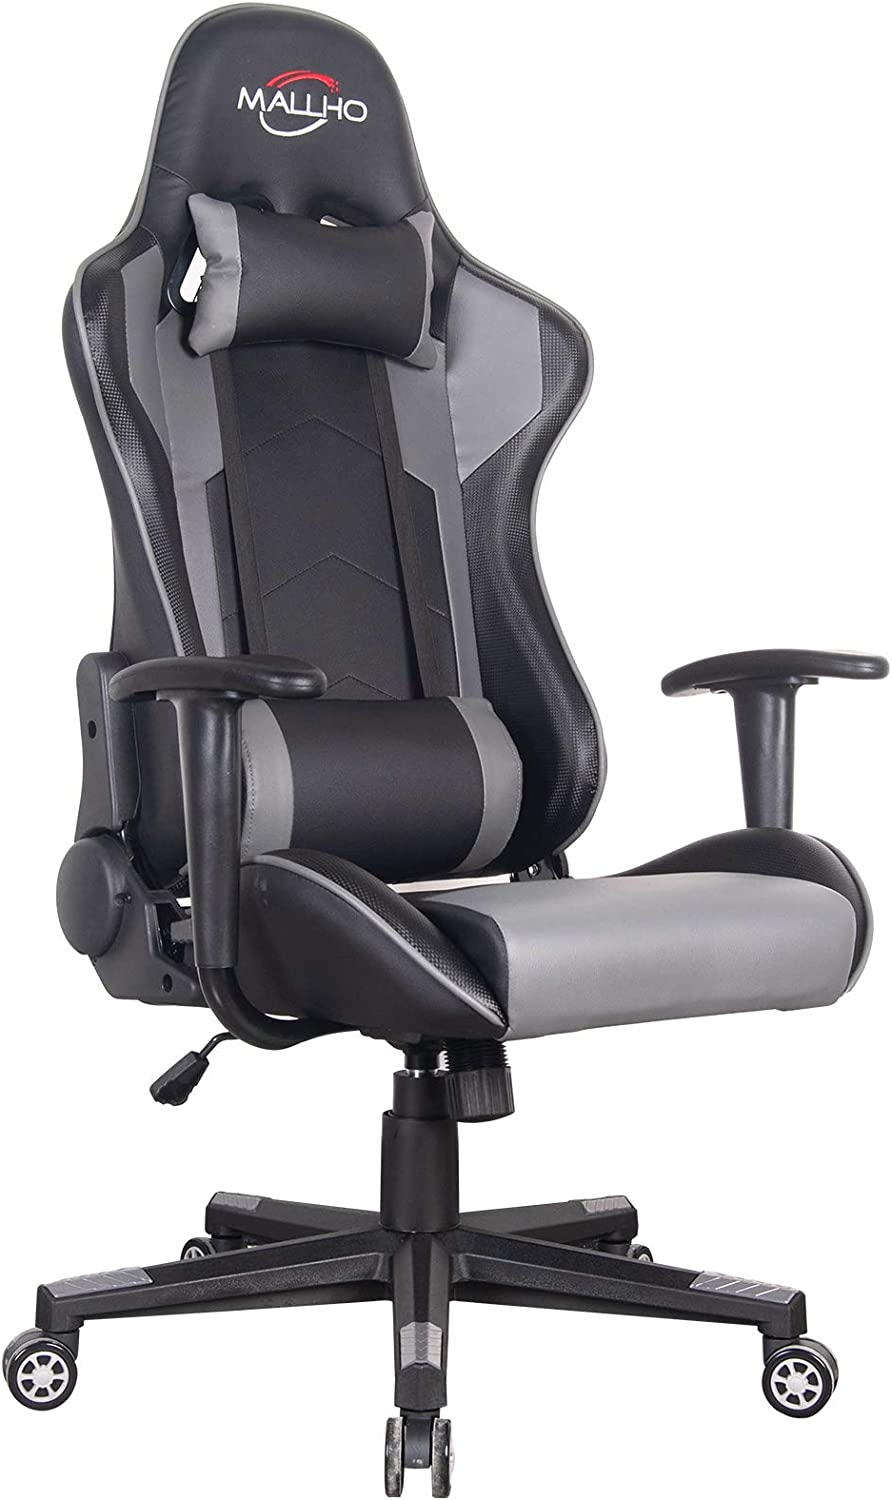 Polar Aurora Gaming Chair Racing Style High-Back PU Leather Office Chair Computer Desk Chair Executive Ergonomic Style Swivel Chair Headrest Lumbar Support (Black)